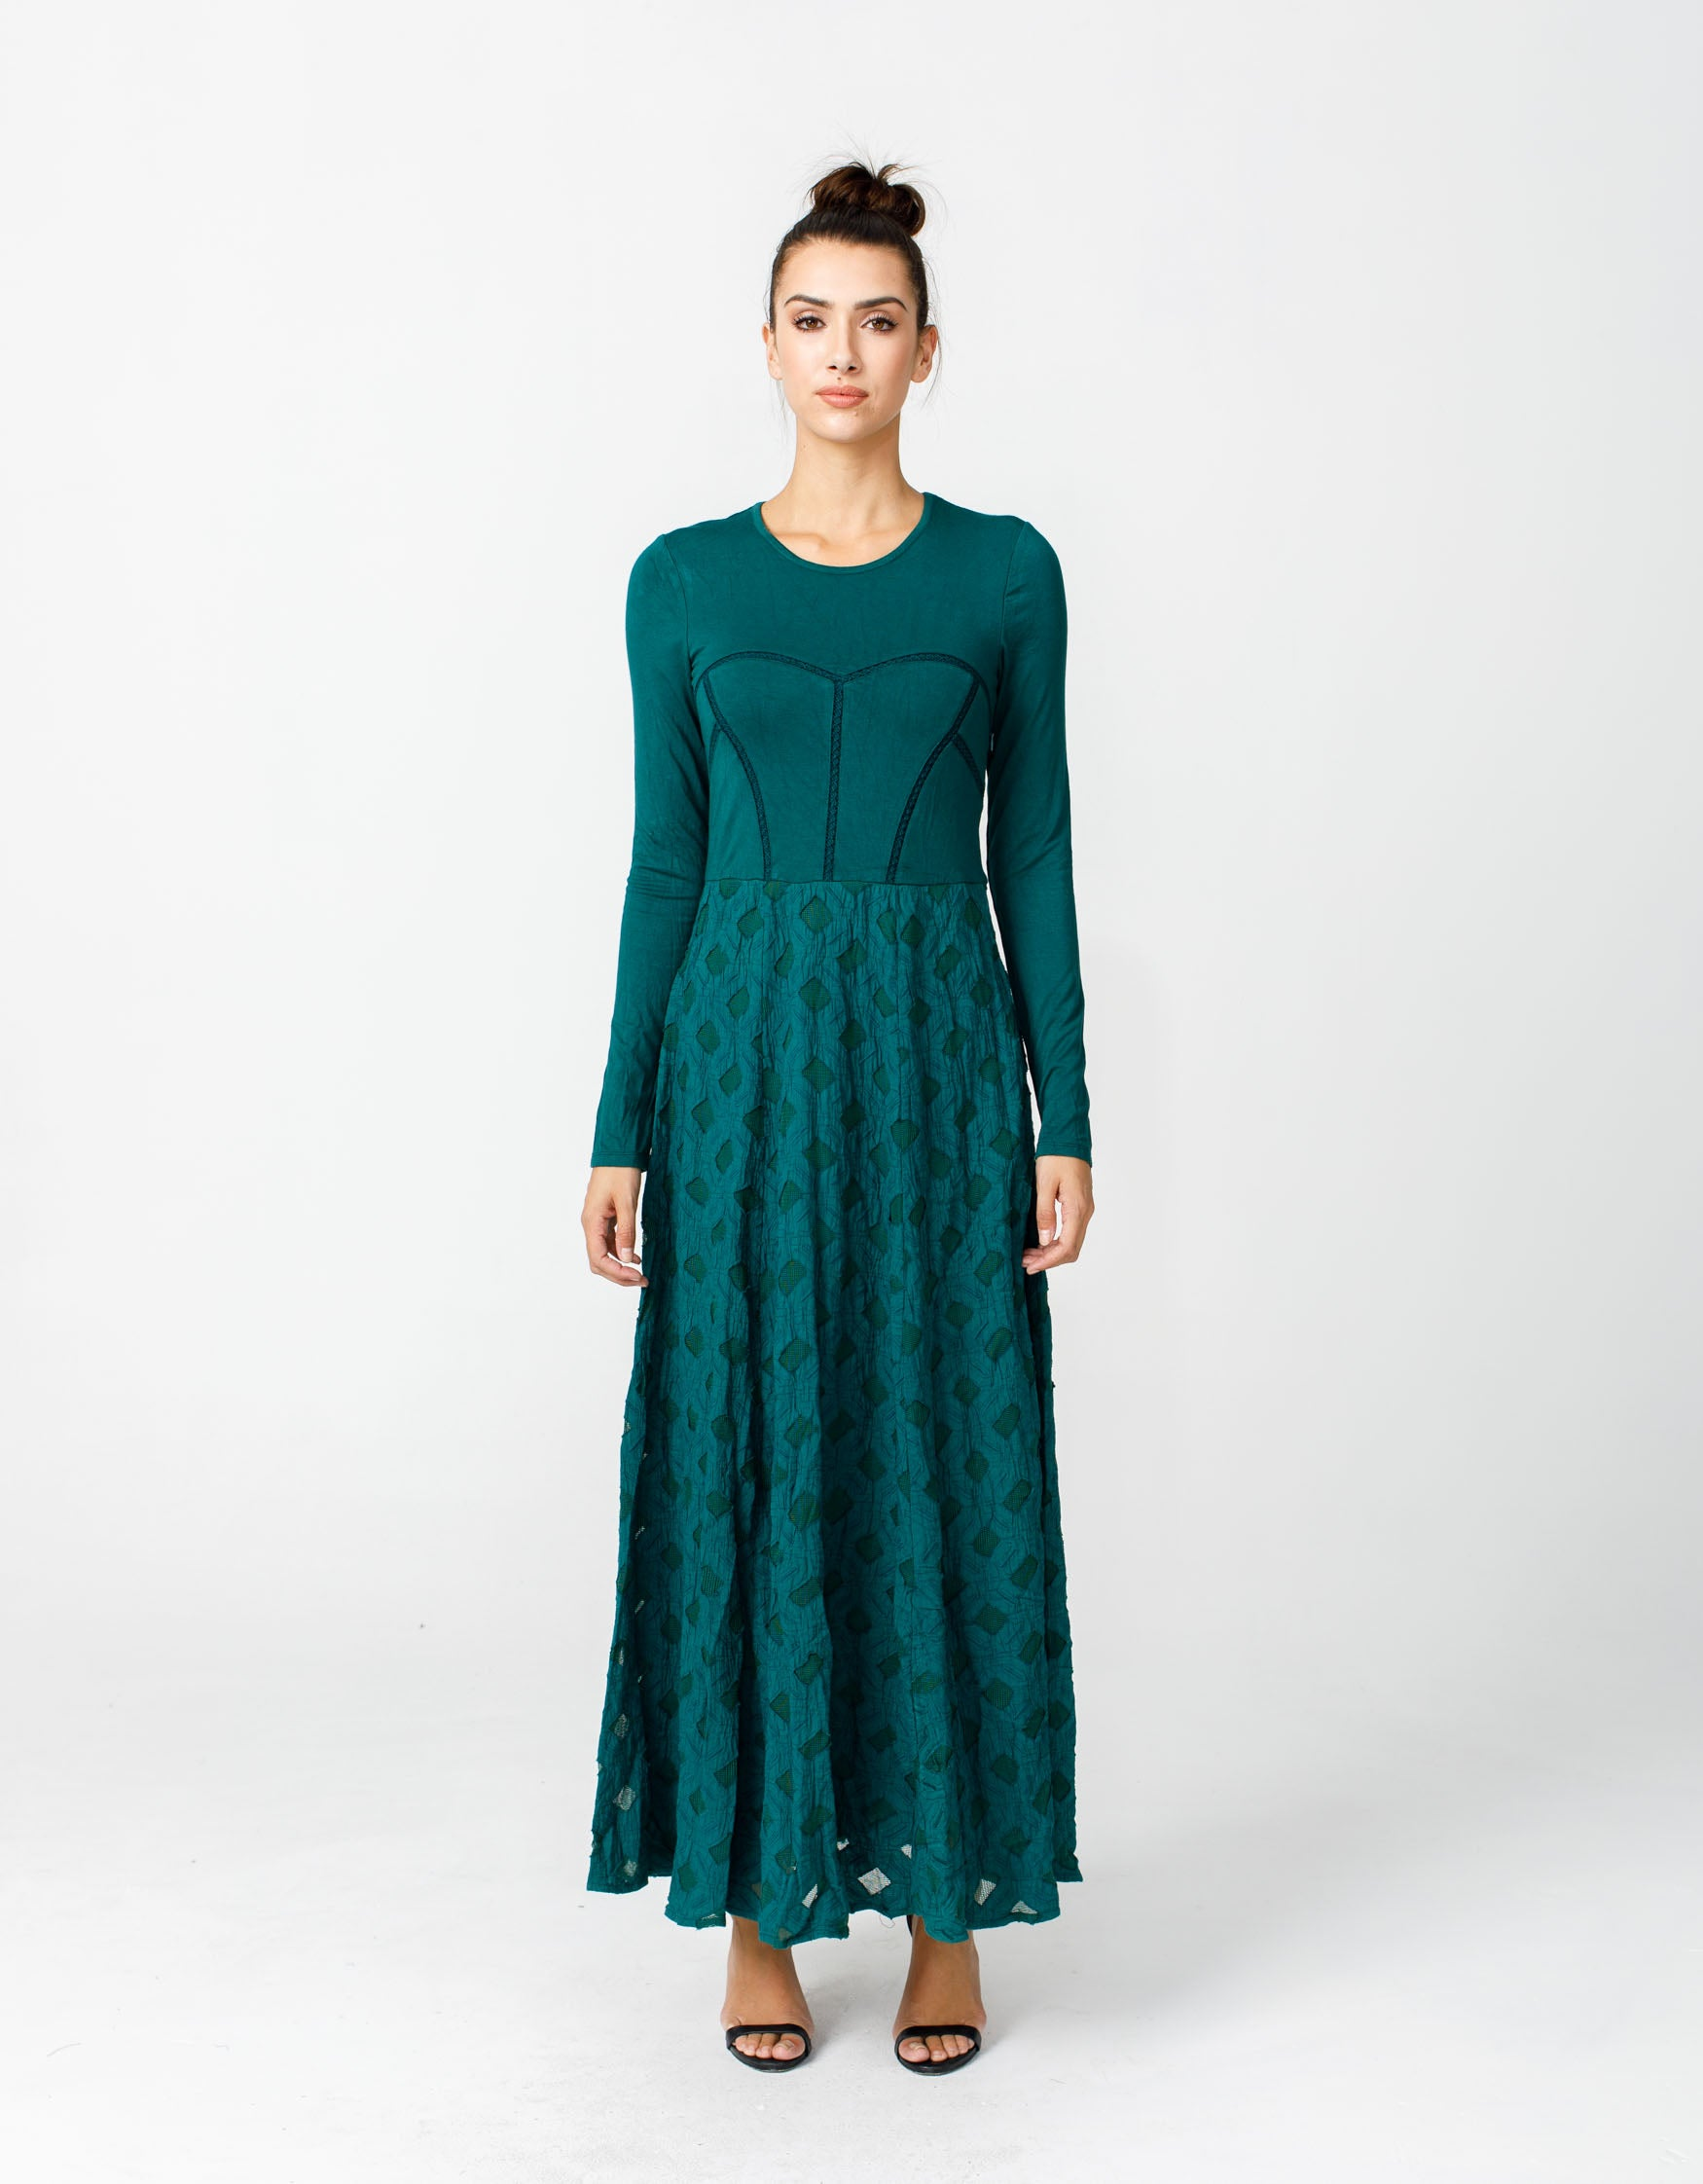 Nomad Dress in Deep Forest